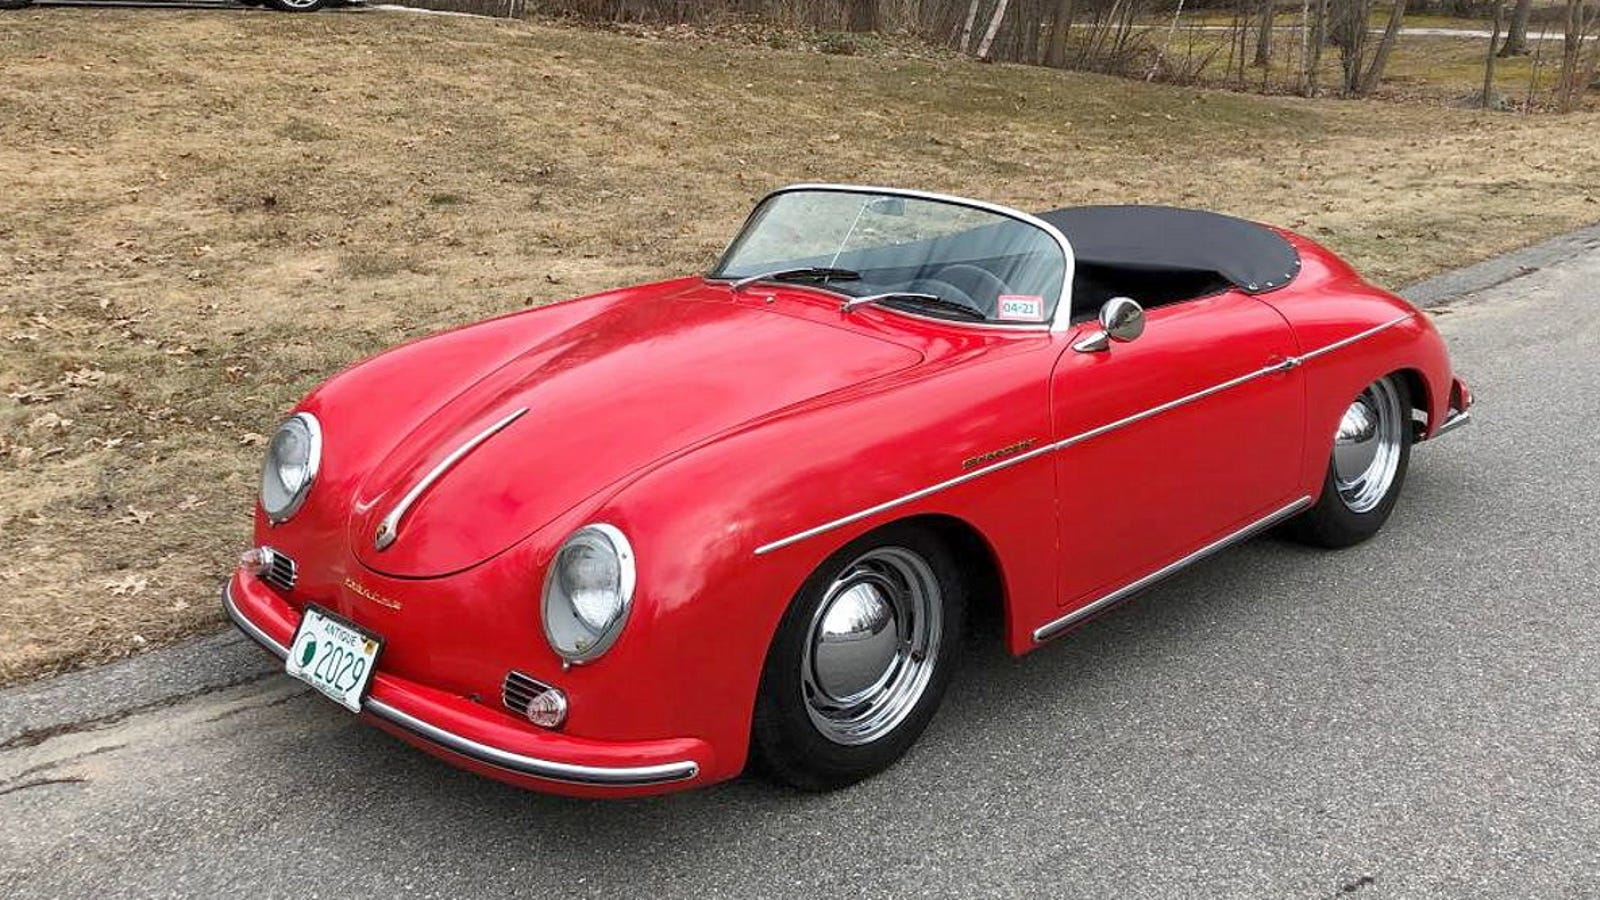 At $16,800, Could This '1957 Porsche Speedster' Replica Be ...